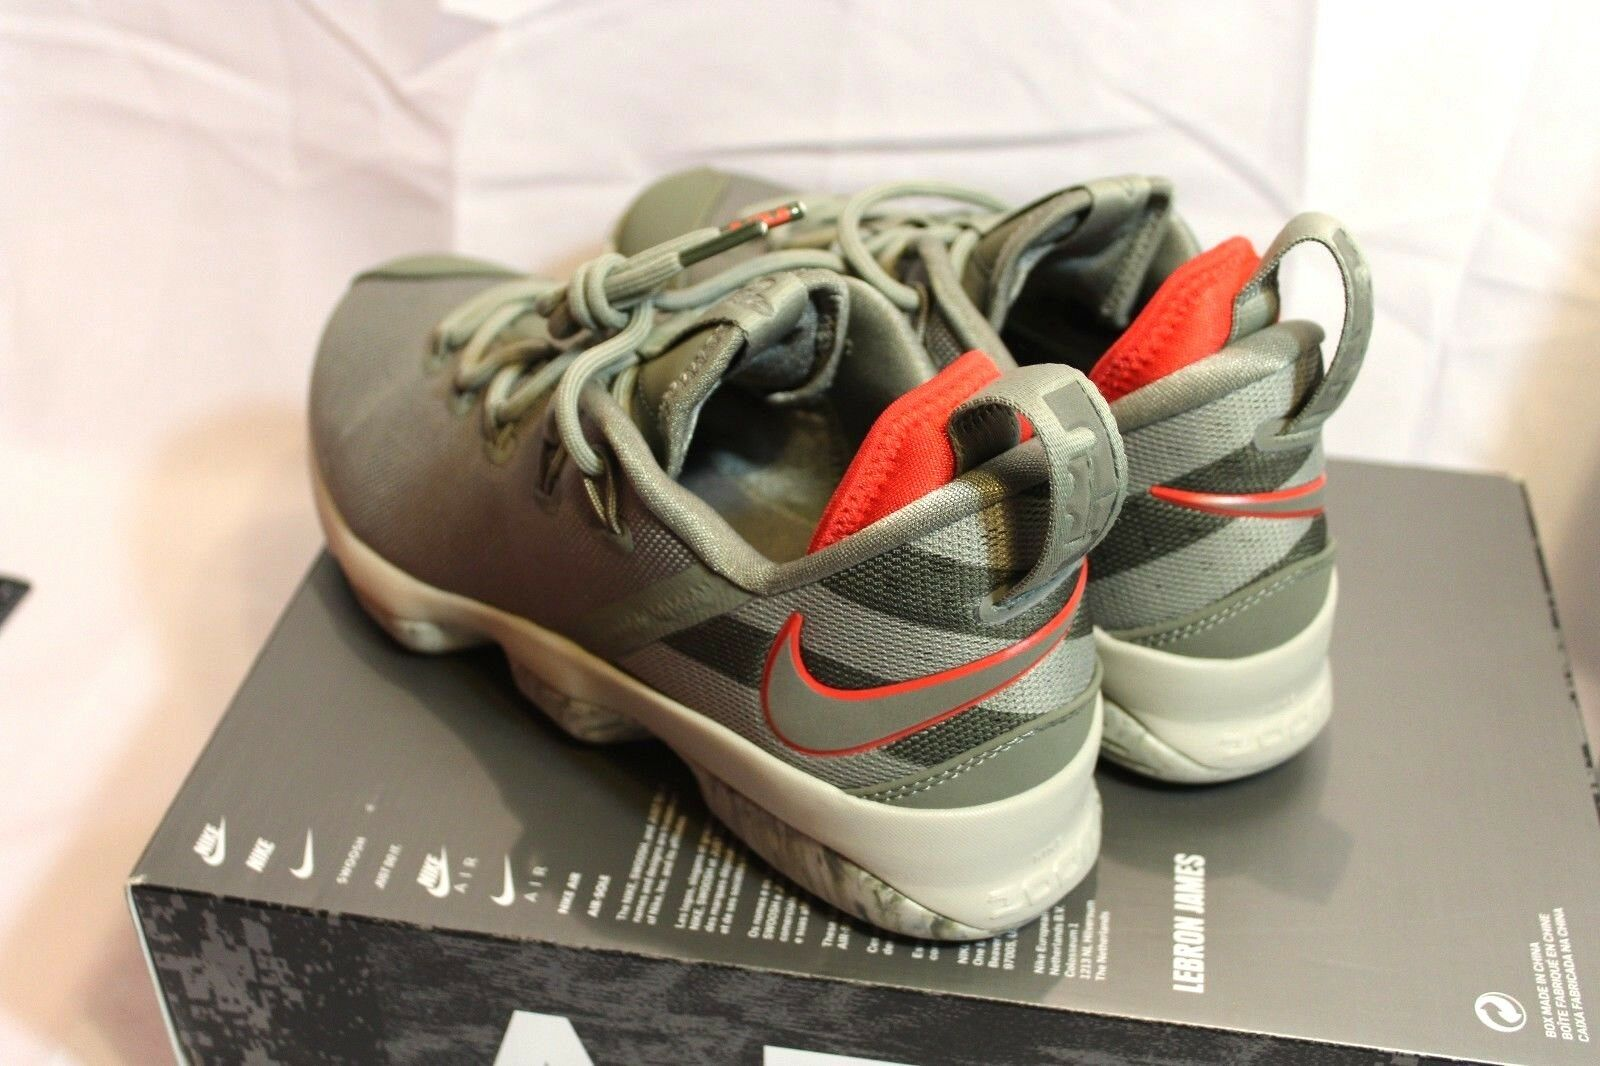 neue männer nike air zoom lebron james athletic xiv niedrigen dunklen stuck athletic james / basketball - schuh 458e12